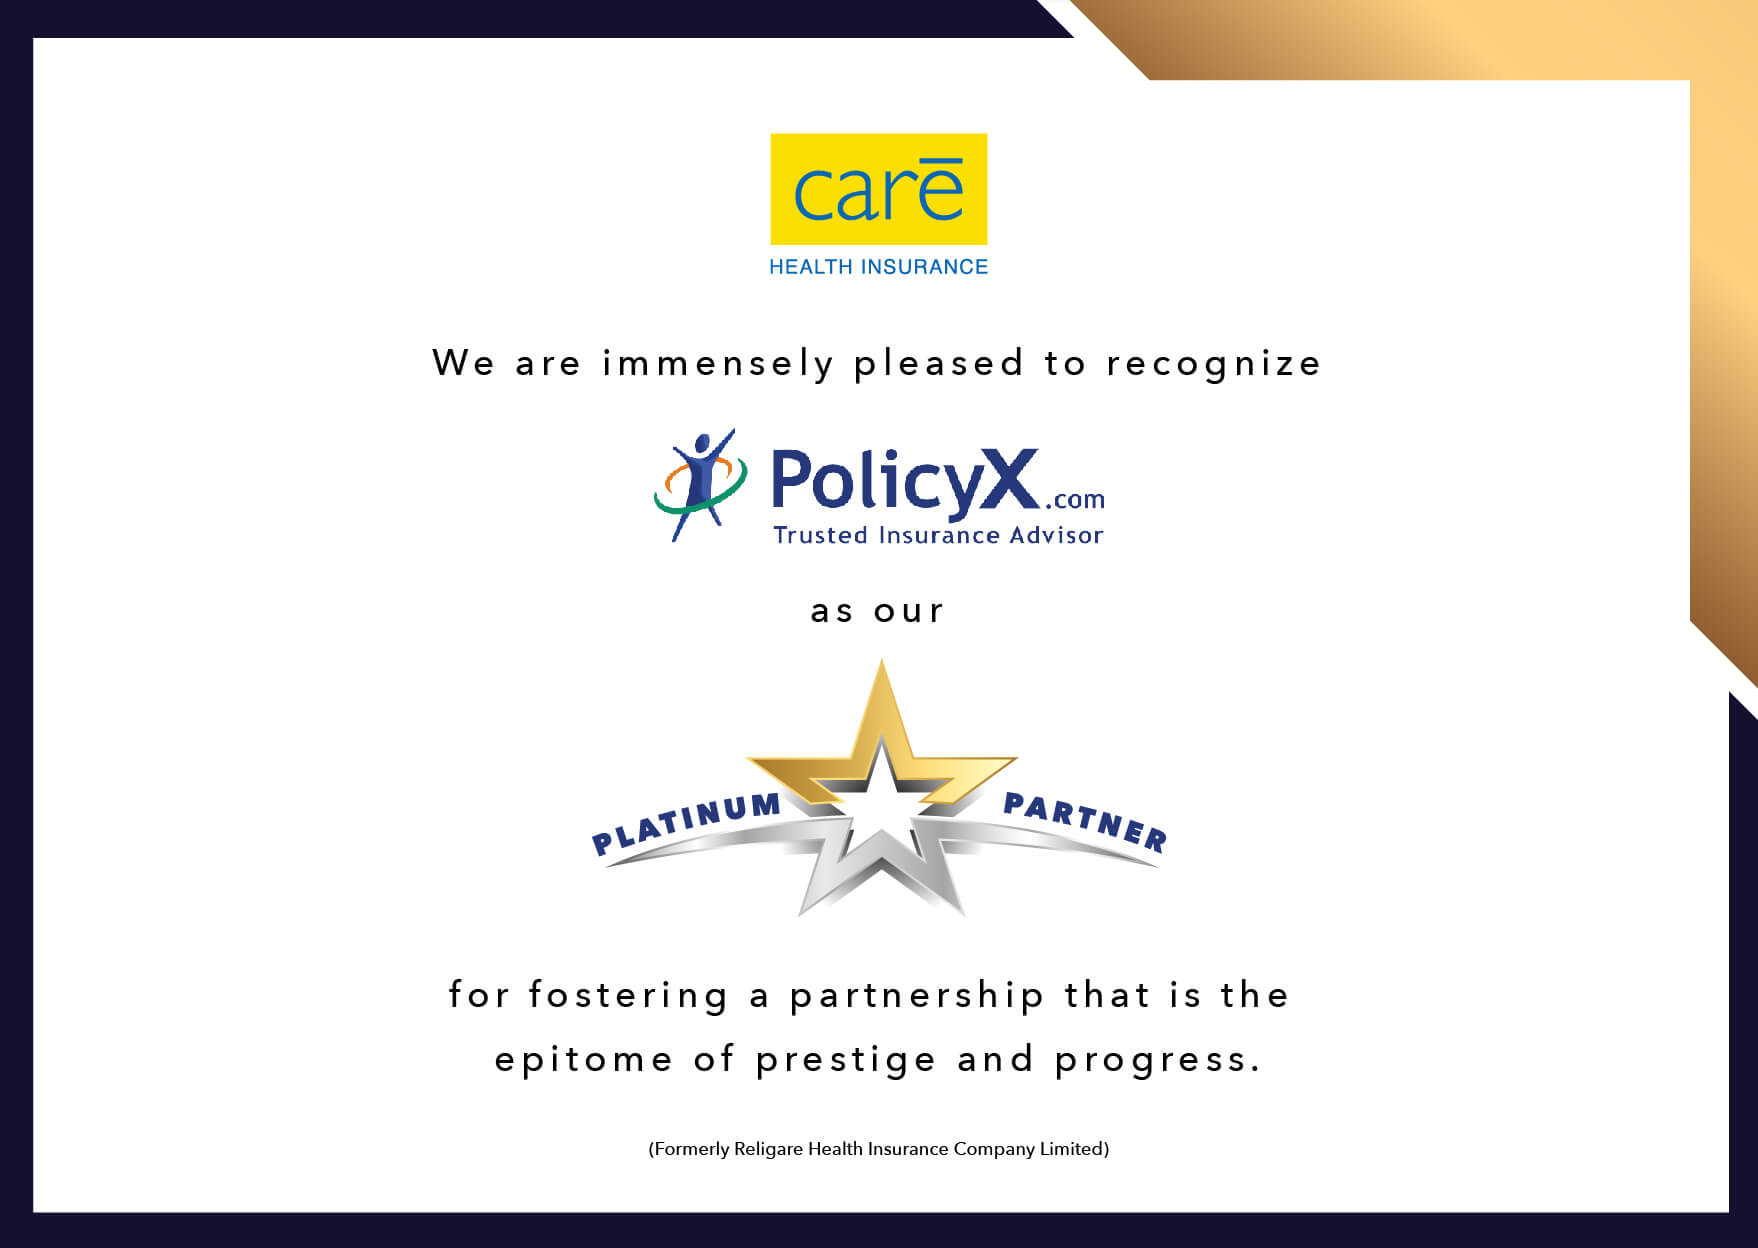 POLICY X - PLATINUM PARTNER CERTIFICATE